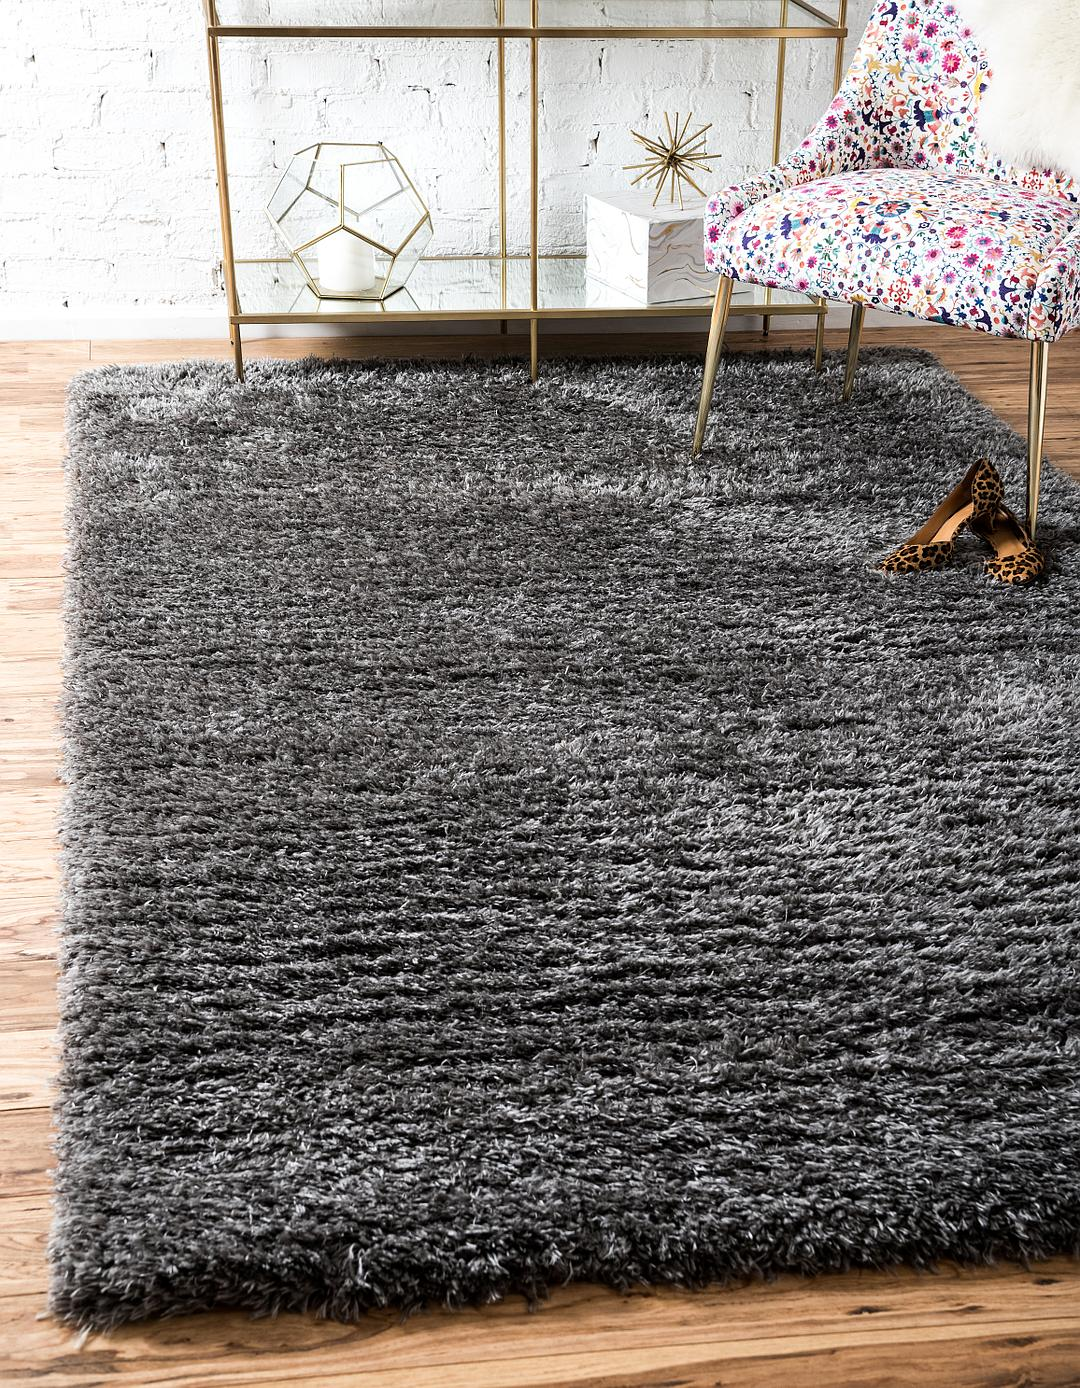 charcoal bedroom silver thick rug patterned area room fluffy throw floor gray lurex modern black living shiny shimmer shaggy soft products plush carpet grey harmony shag pile sparkle large